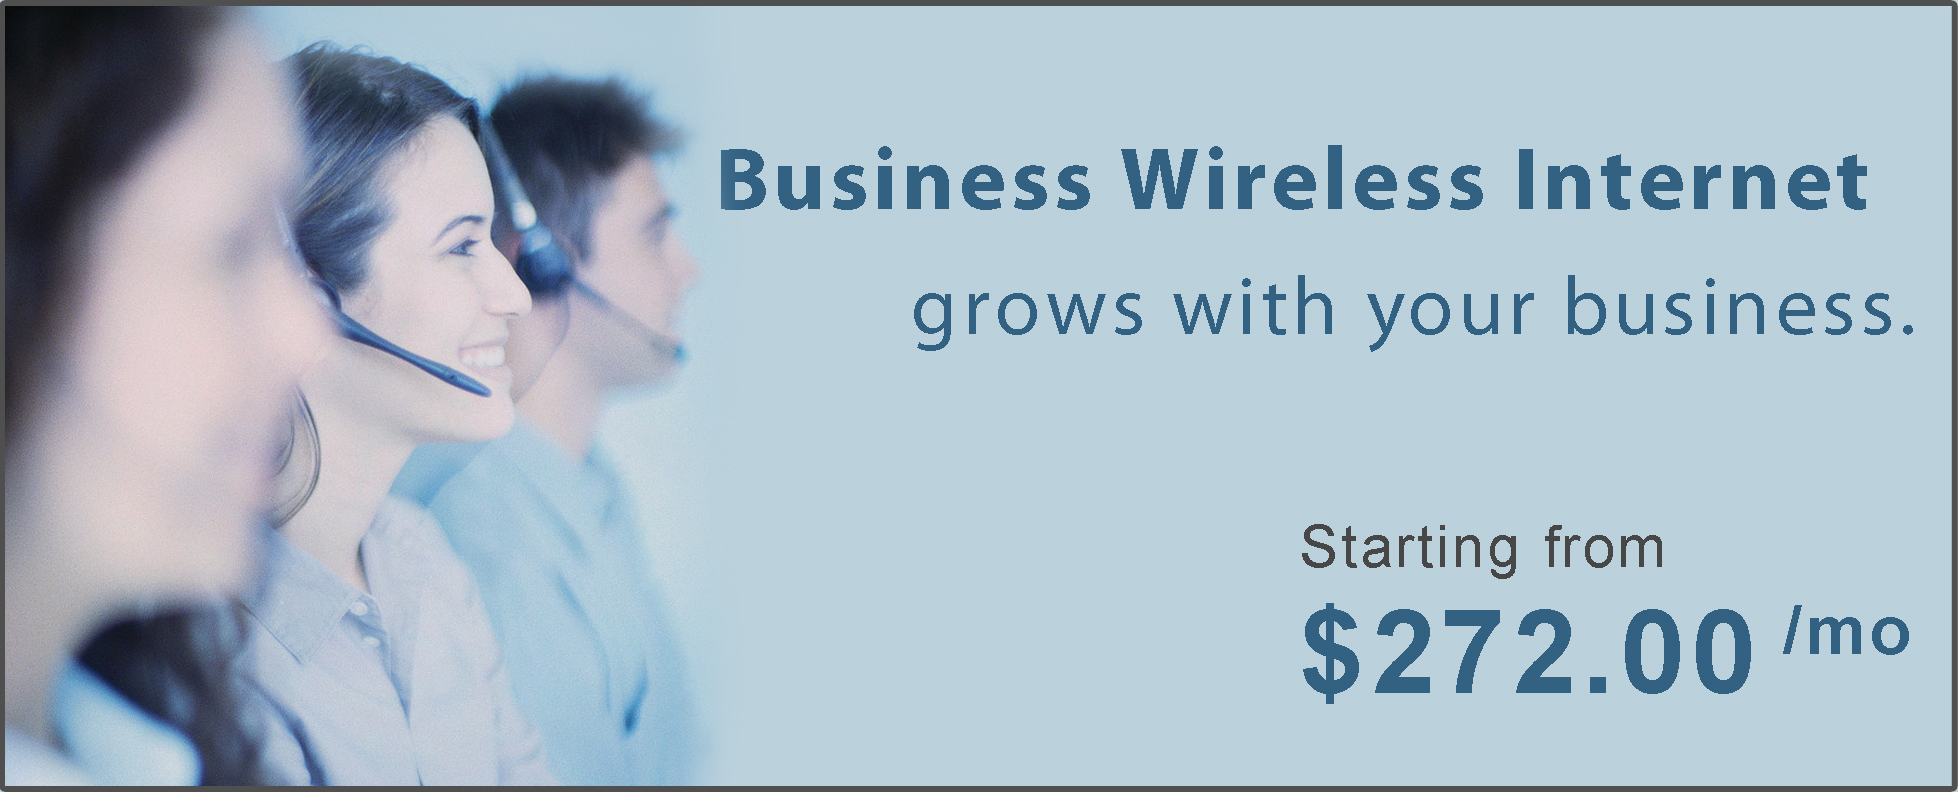 Business Wireless Internet Banner